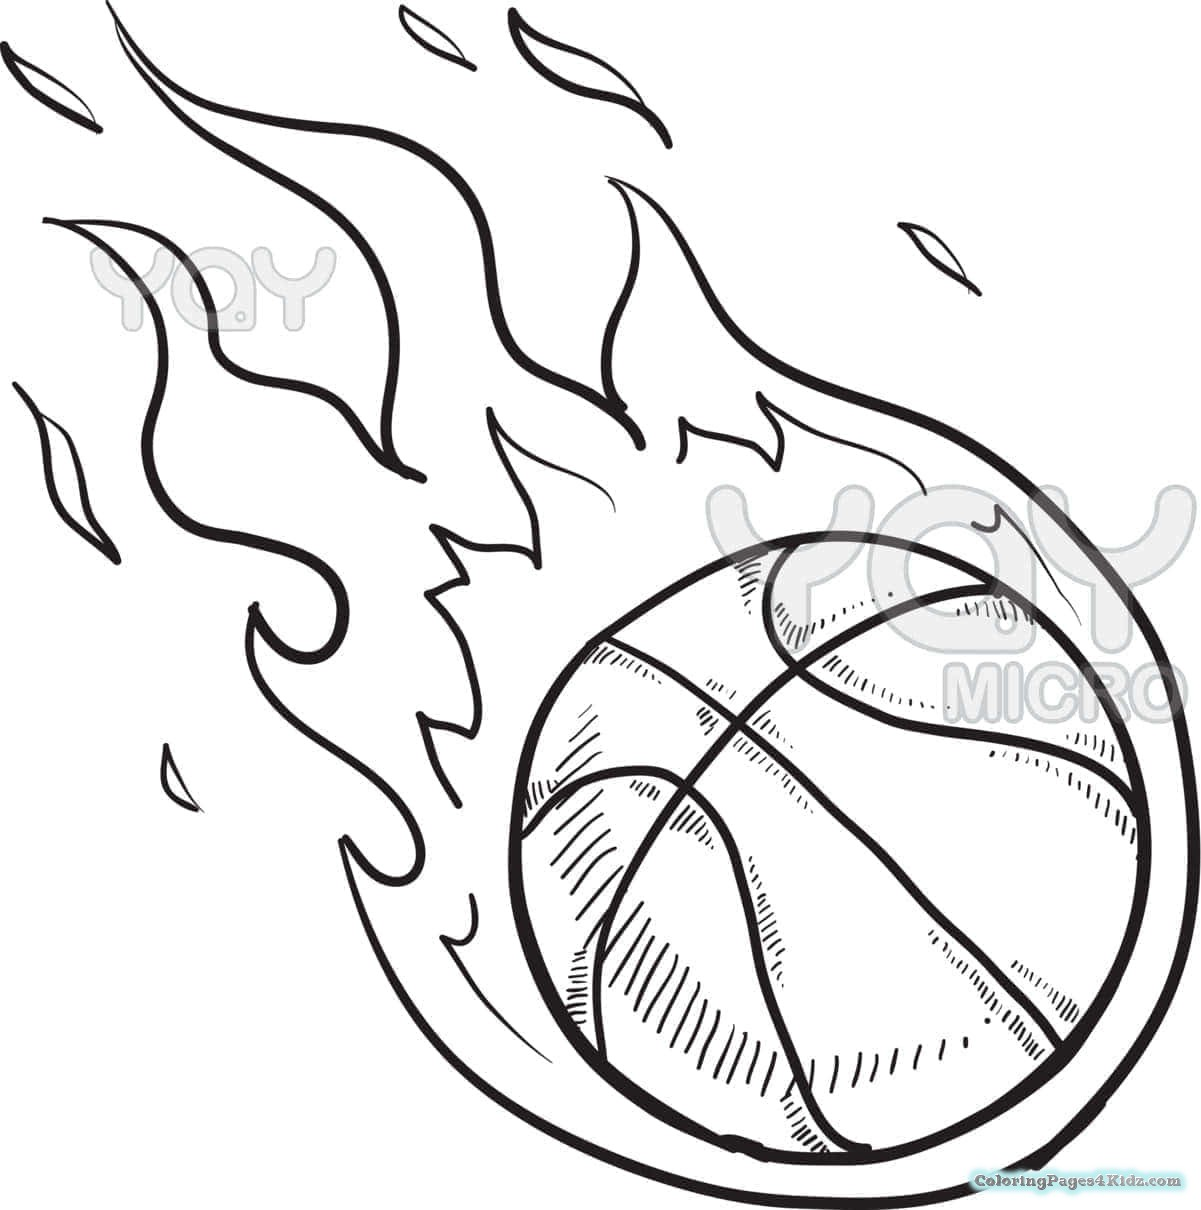 1201x1210 Stephen Curry Basketball Shoes Coloring Pages Coloring Pages